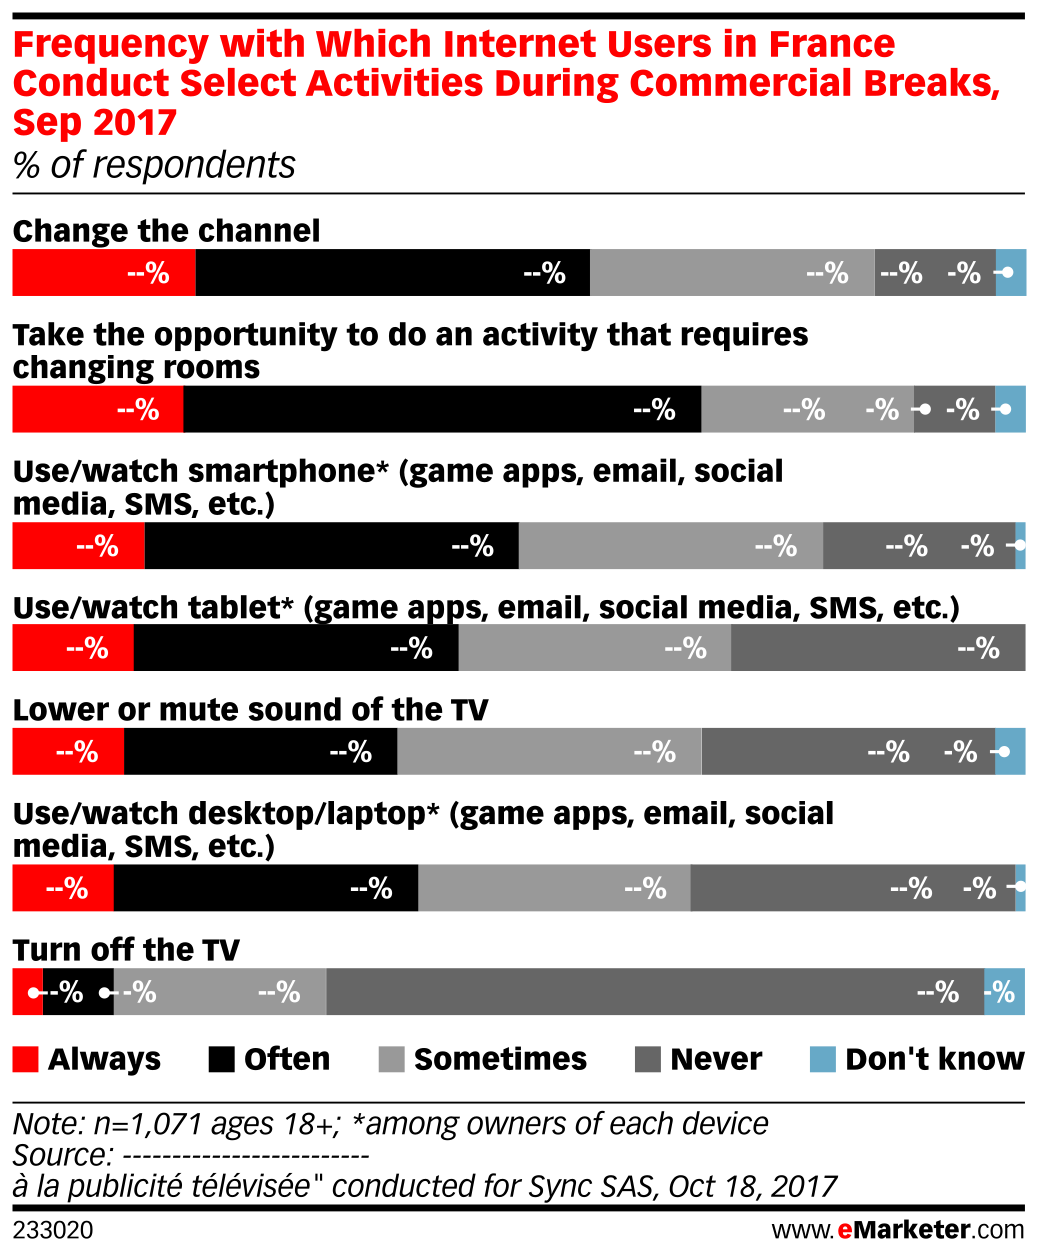 Frequency with Which Internet Users in France Conduct Select Activities During Commercial Breaks, Sep 2017 (% of respondents)